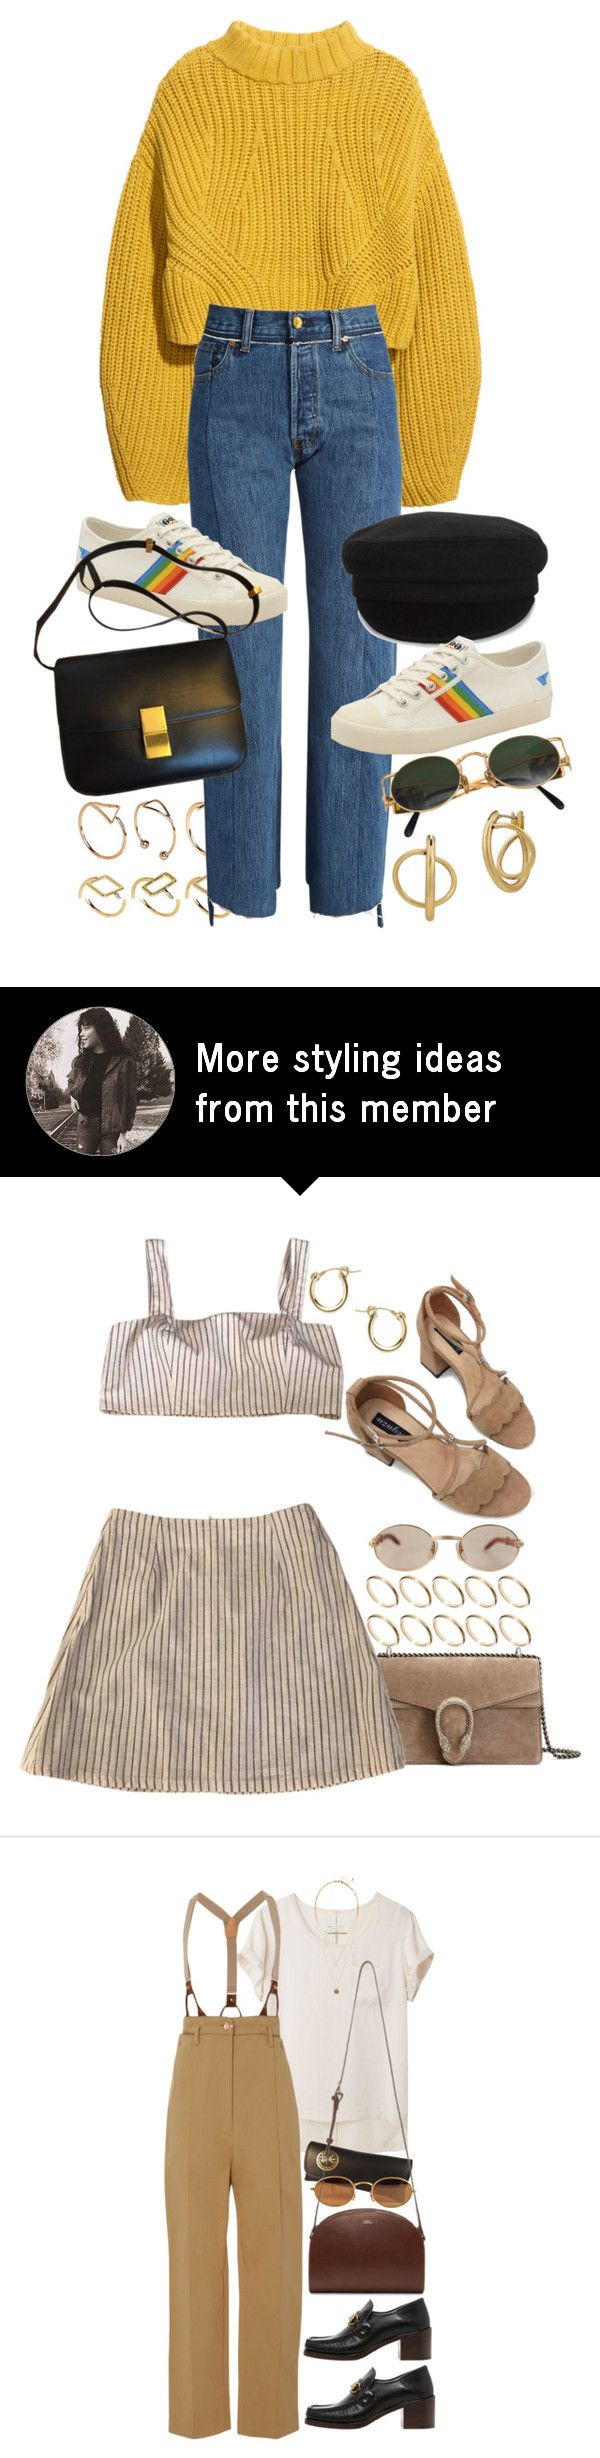 """Untitled #11501"" by nikka-phillips on Polyvore featuring ASOS, H&M, Vetements, Étoile Isabel Marant, Gola, Jean-Paul Gaultier and Lucky Brand"